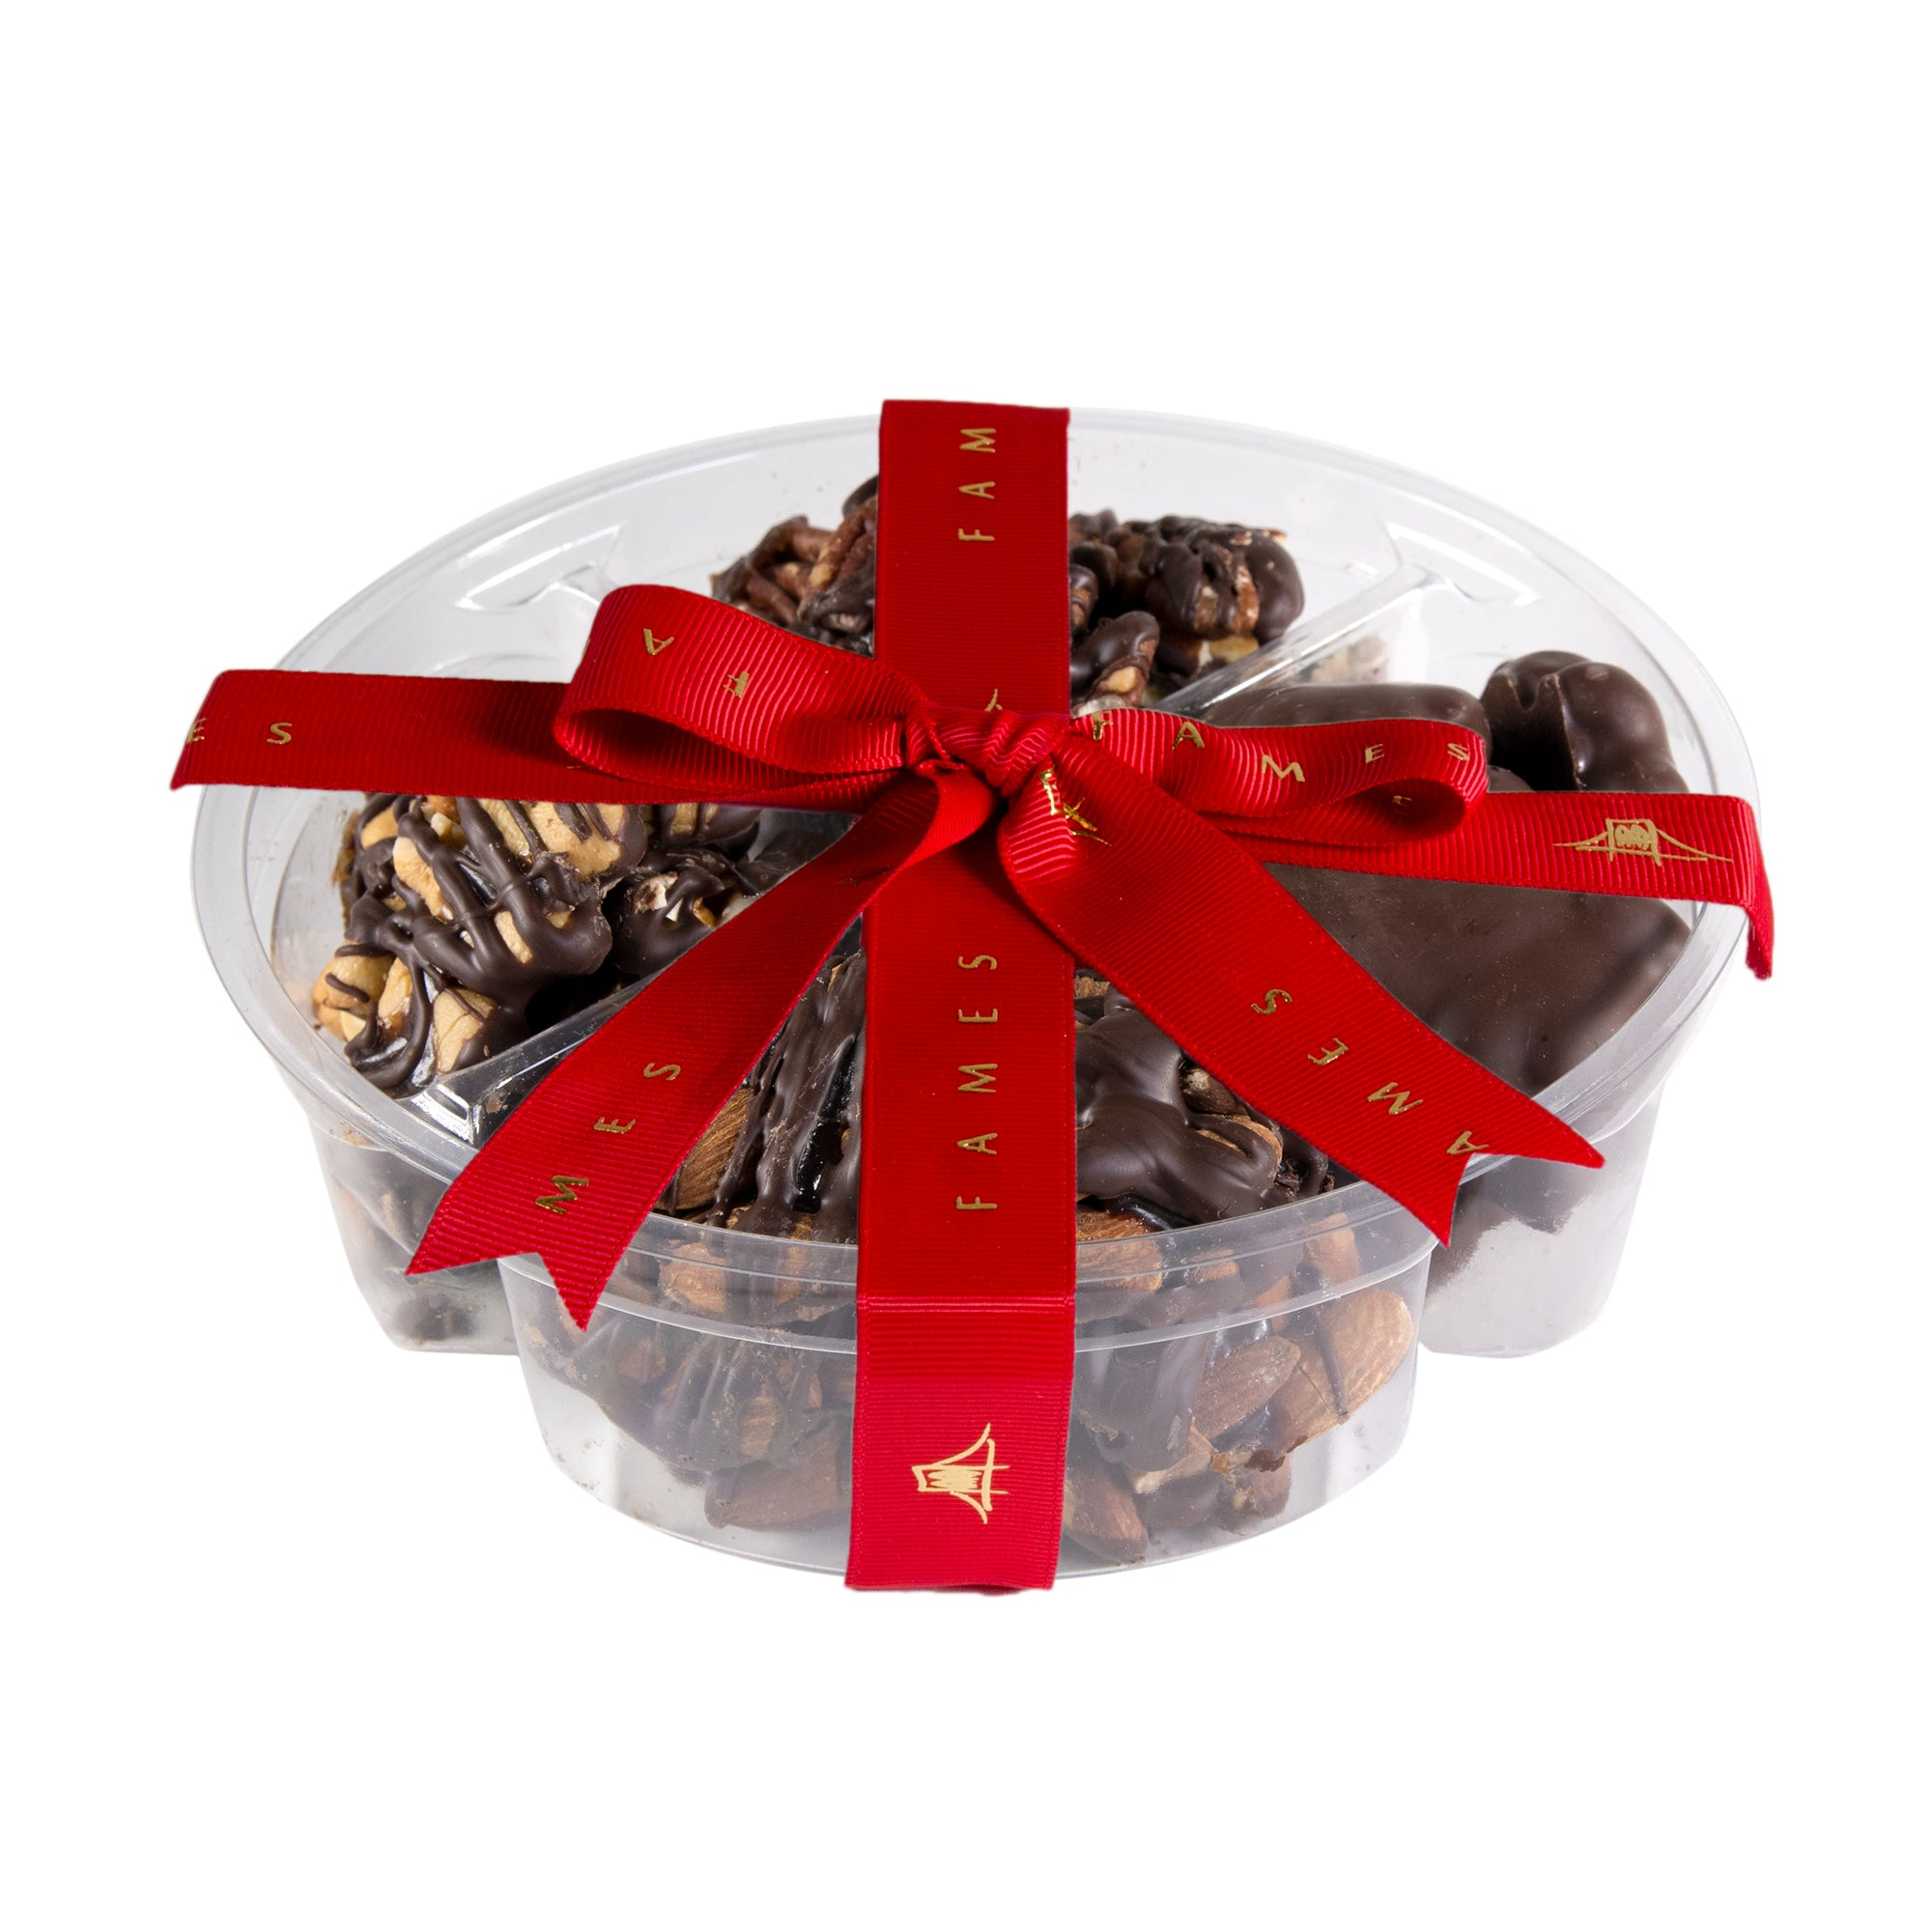 Select 4 chocolates you'd like for your custom chocolate assortment, 1 Lb.